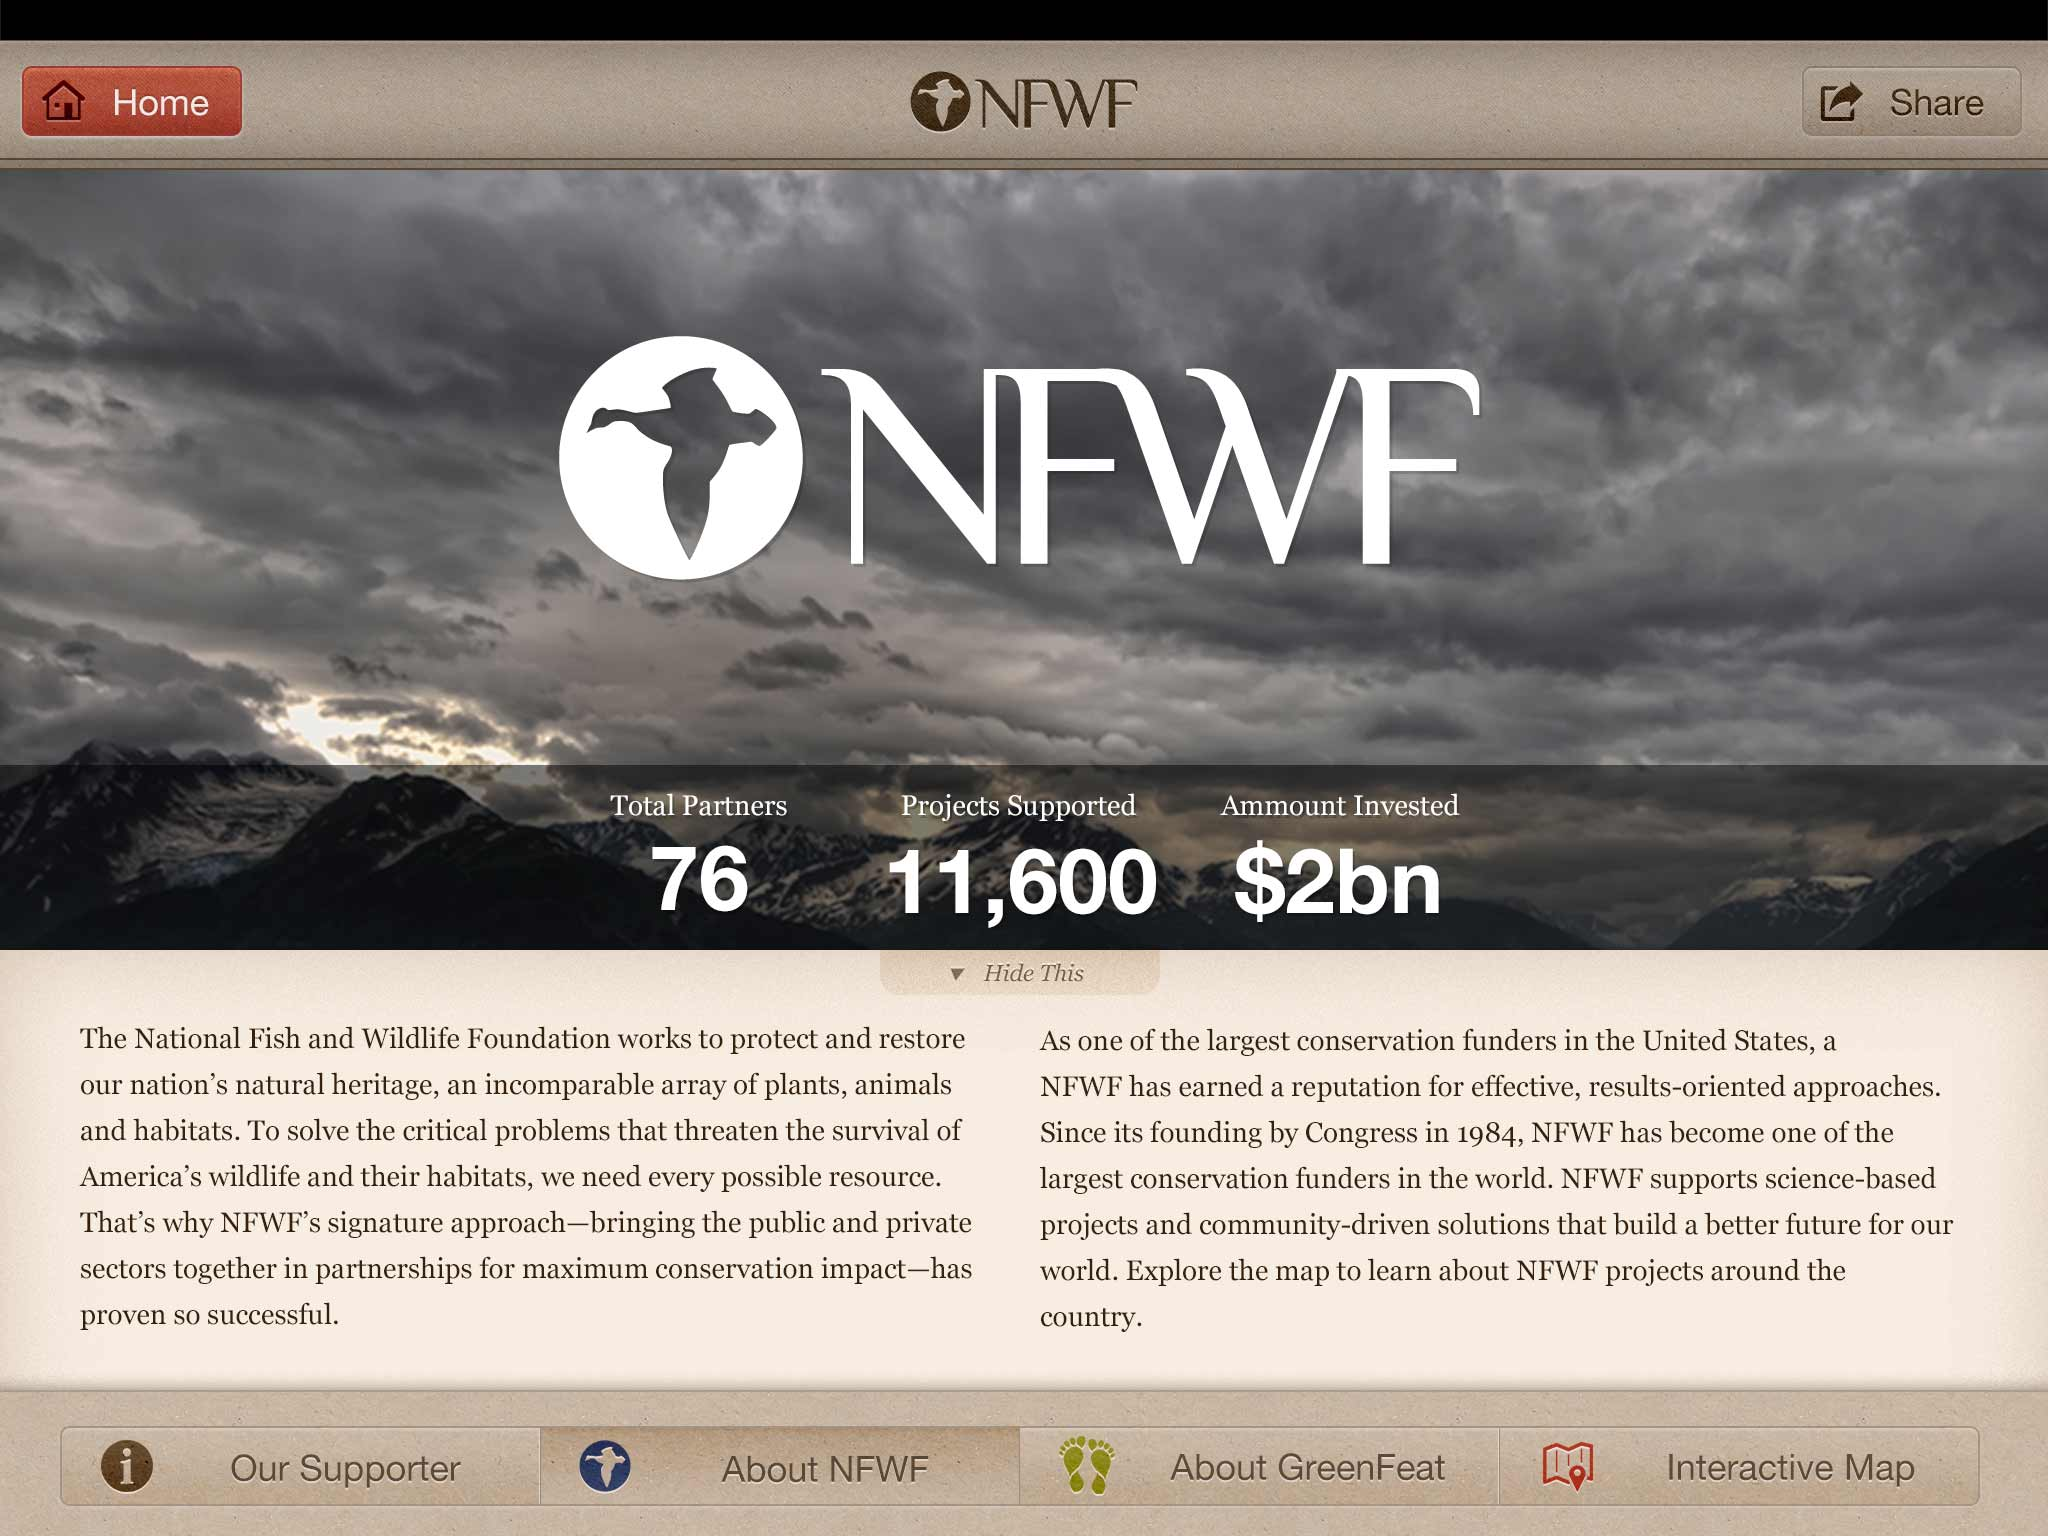 Screenshot: About NFWF